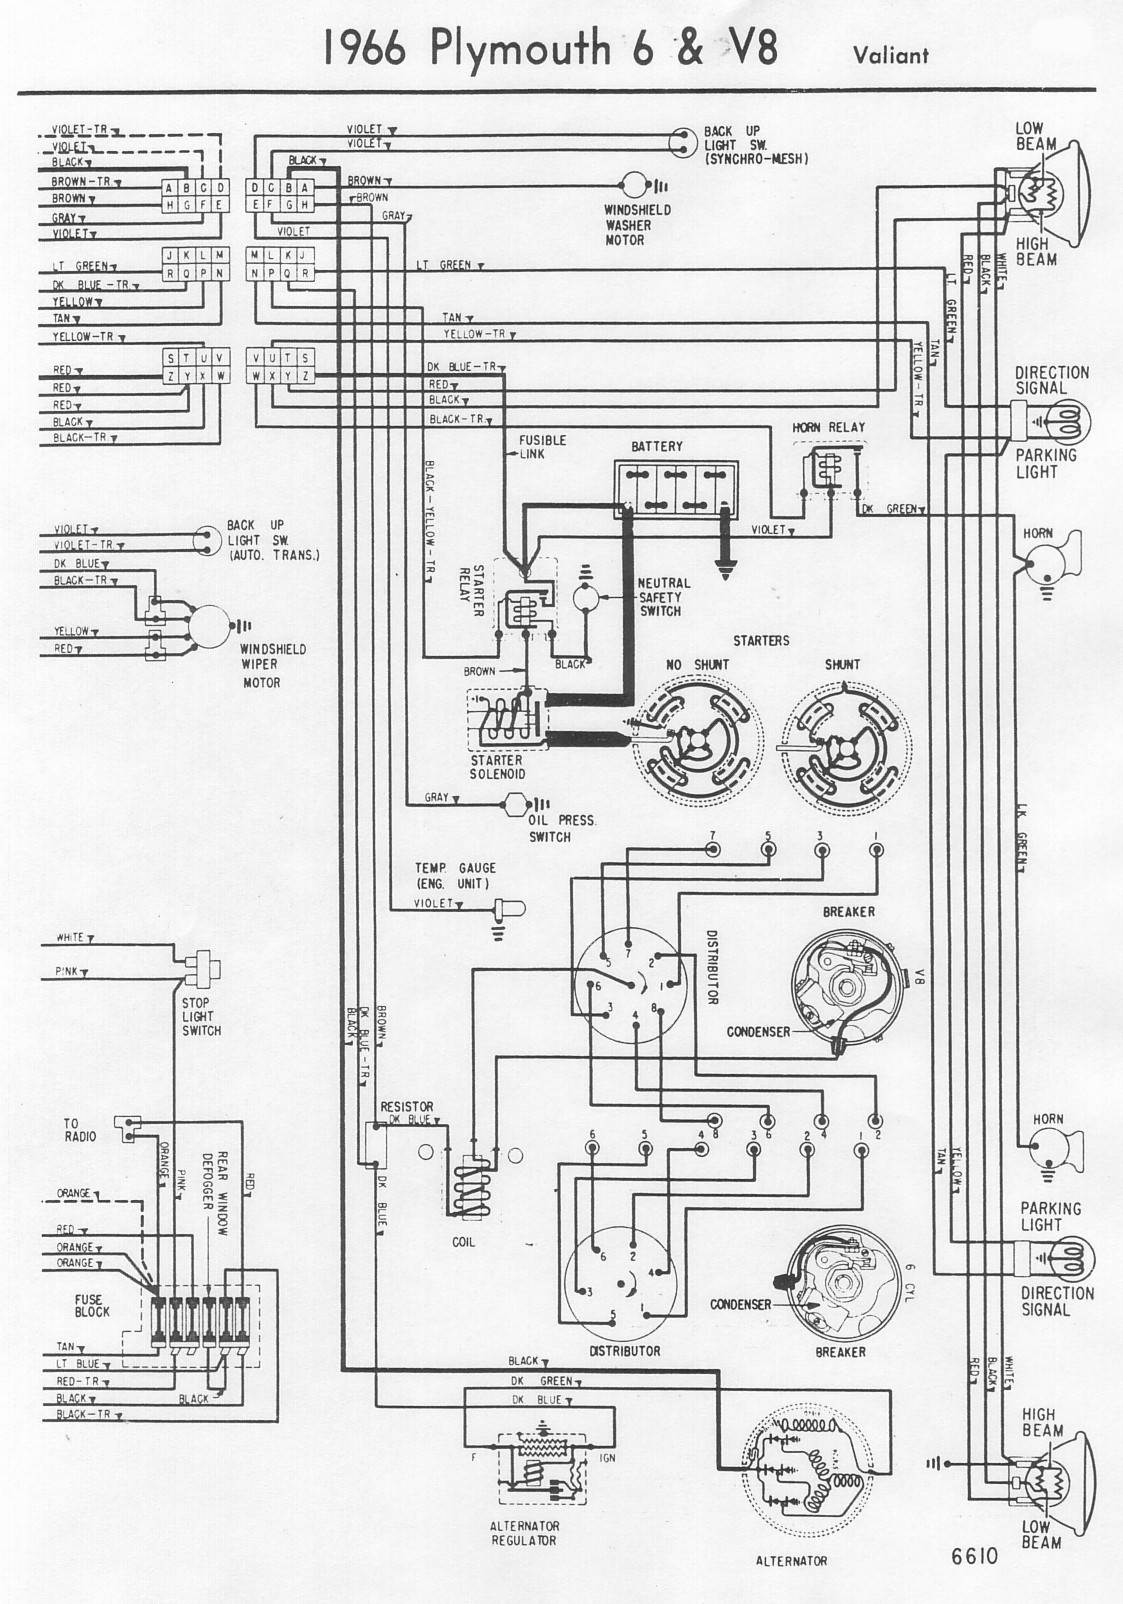 66ValiantB?quality\\\\\\\\\=80\\\\\\\\\&strip\\\\\\\\\=all 400ex wiring diagram 400ex wiring diagrams instructions 2002 honda 400ex wiring diagram at panicattacktreatment.co